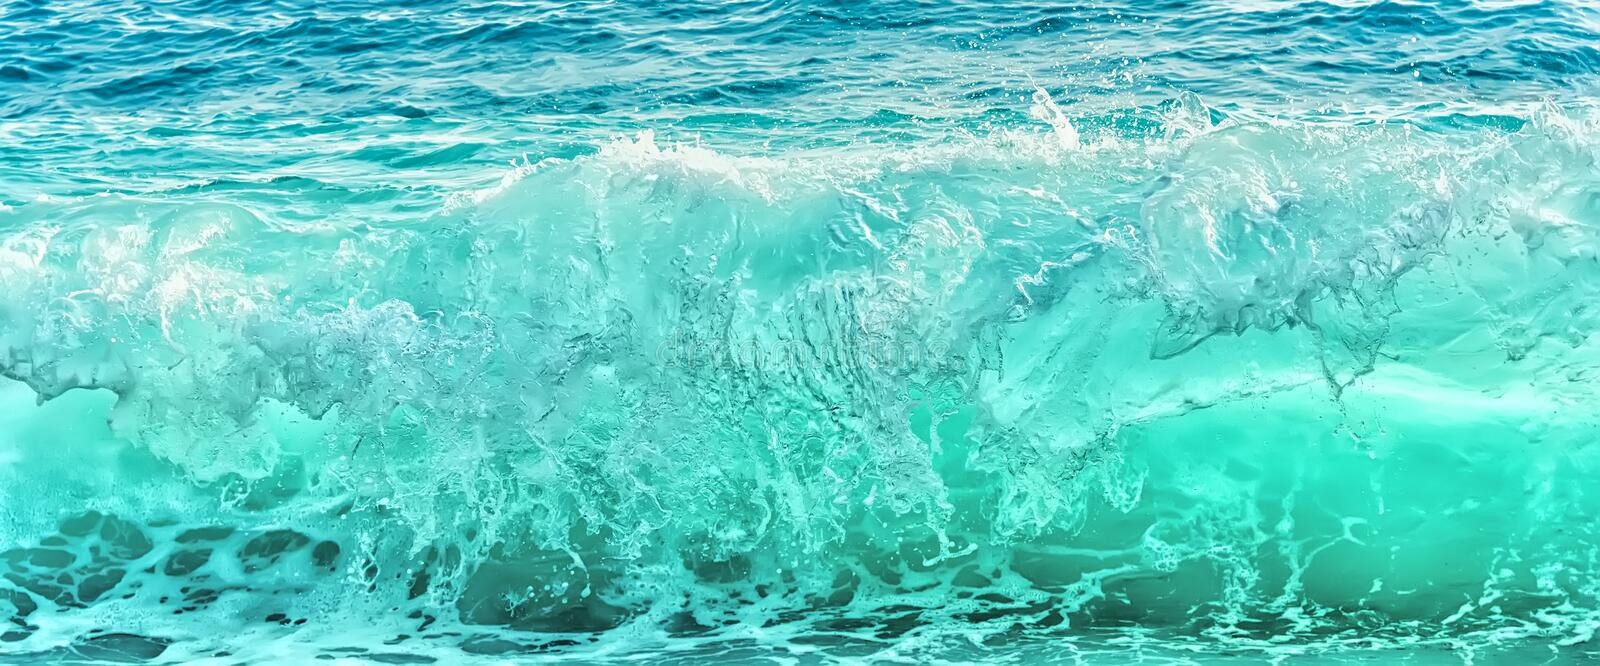 Big blue wave on stormy sea royalty free stock photo